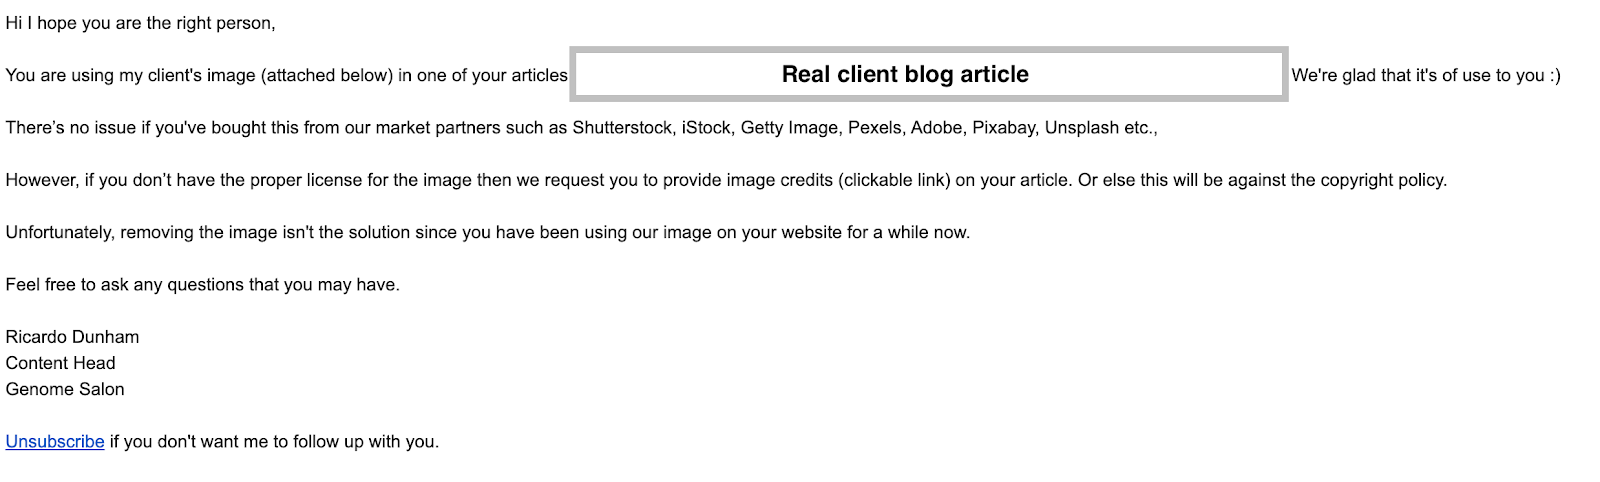 A second example of a real image licensing scam